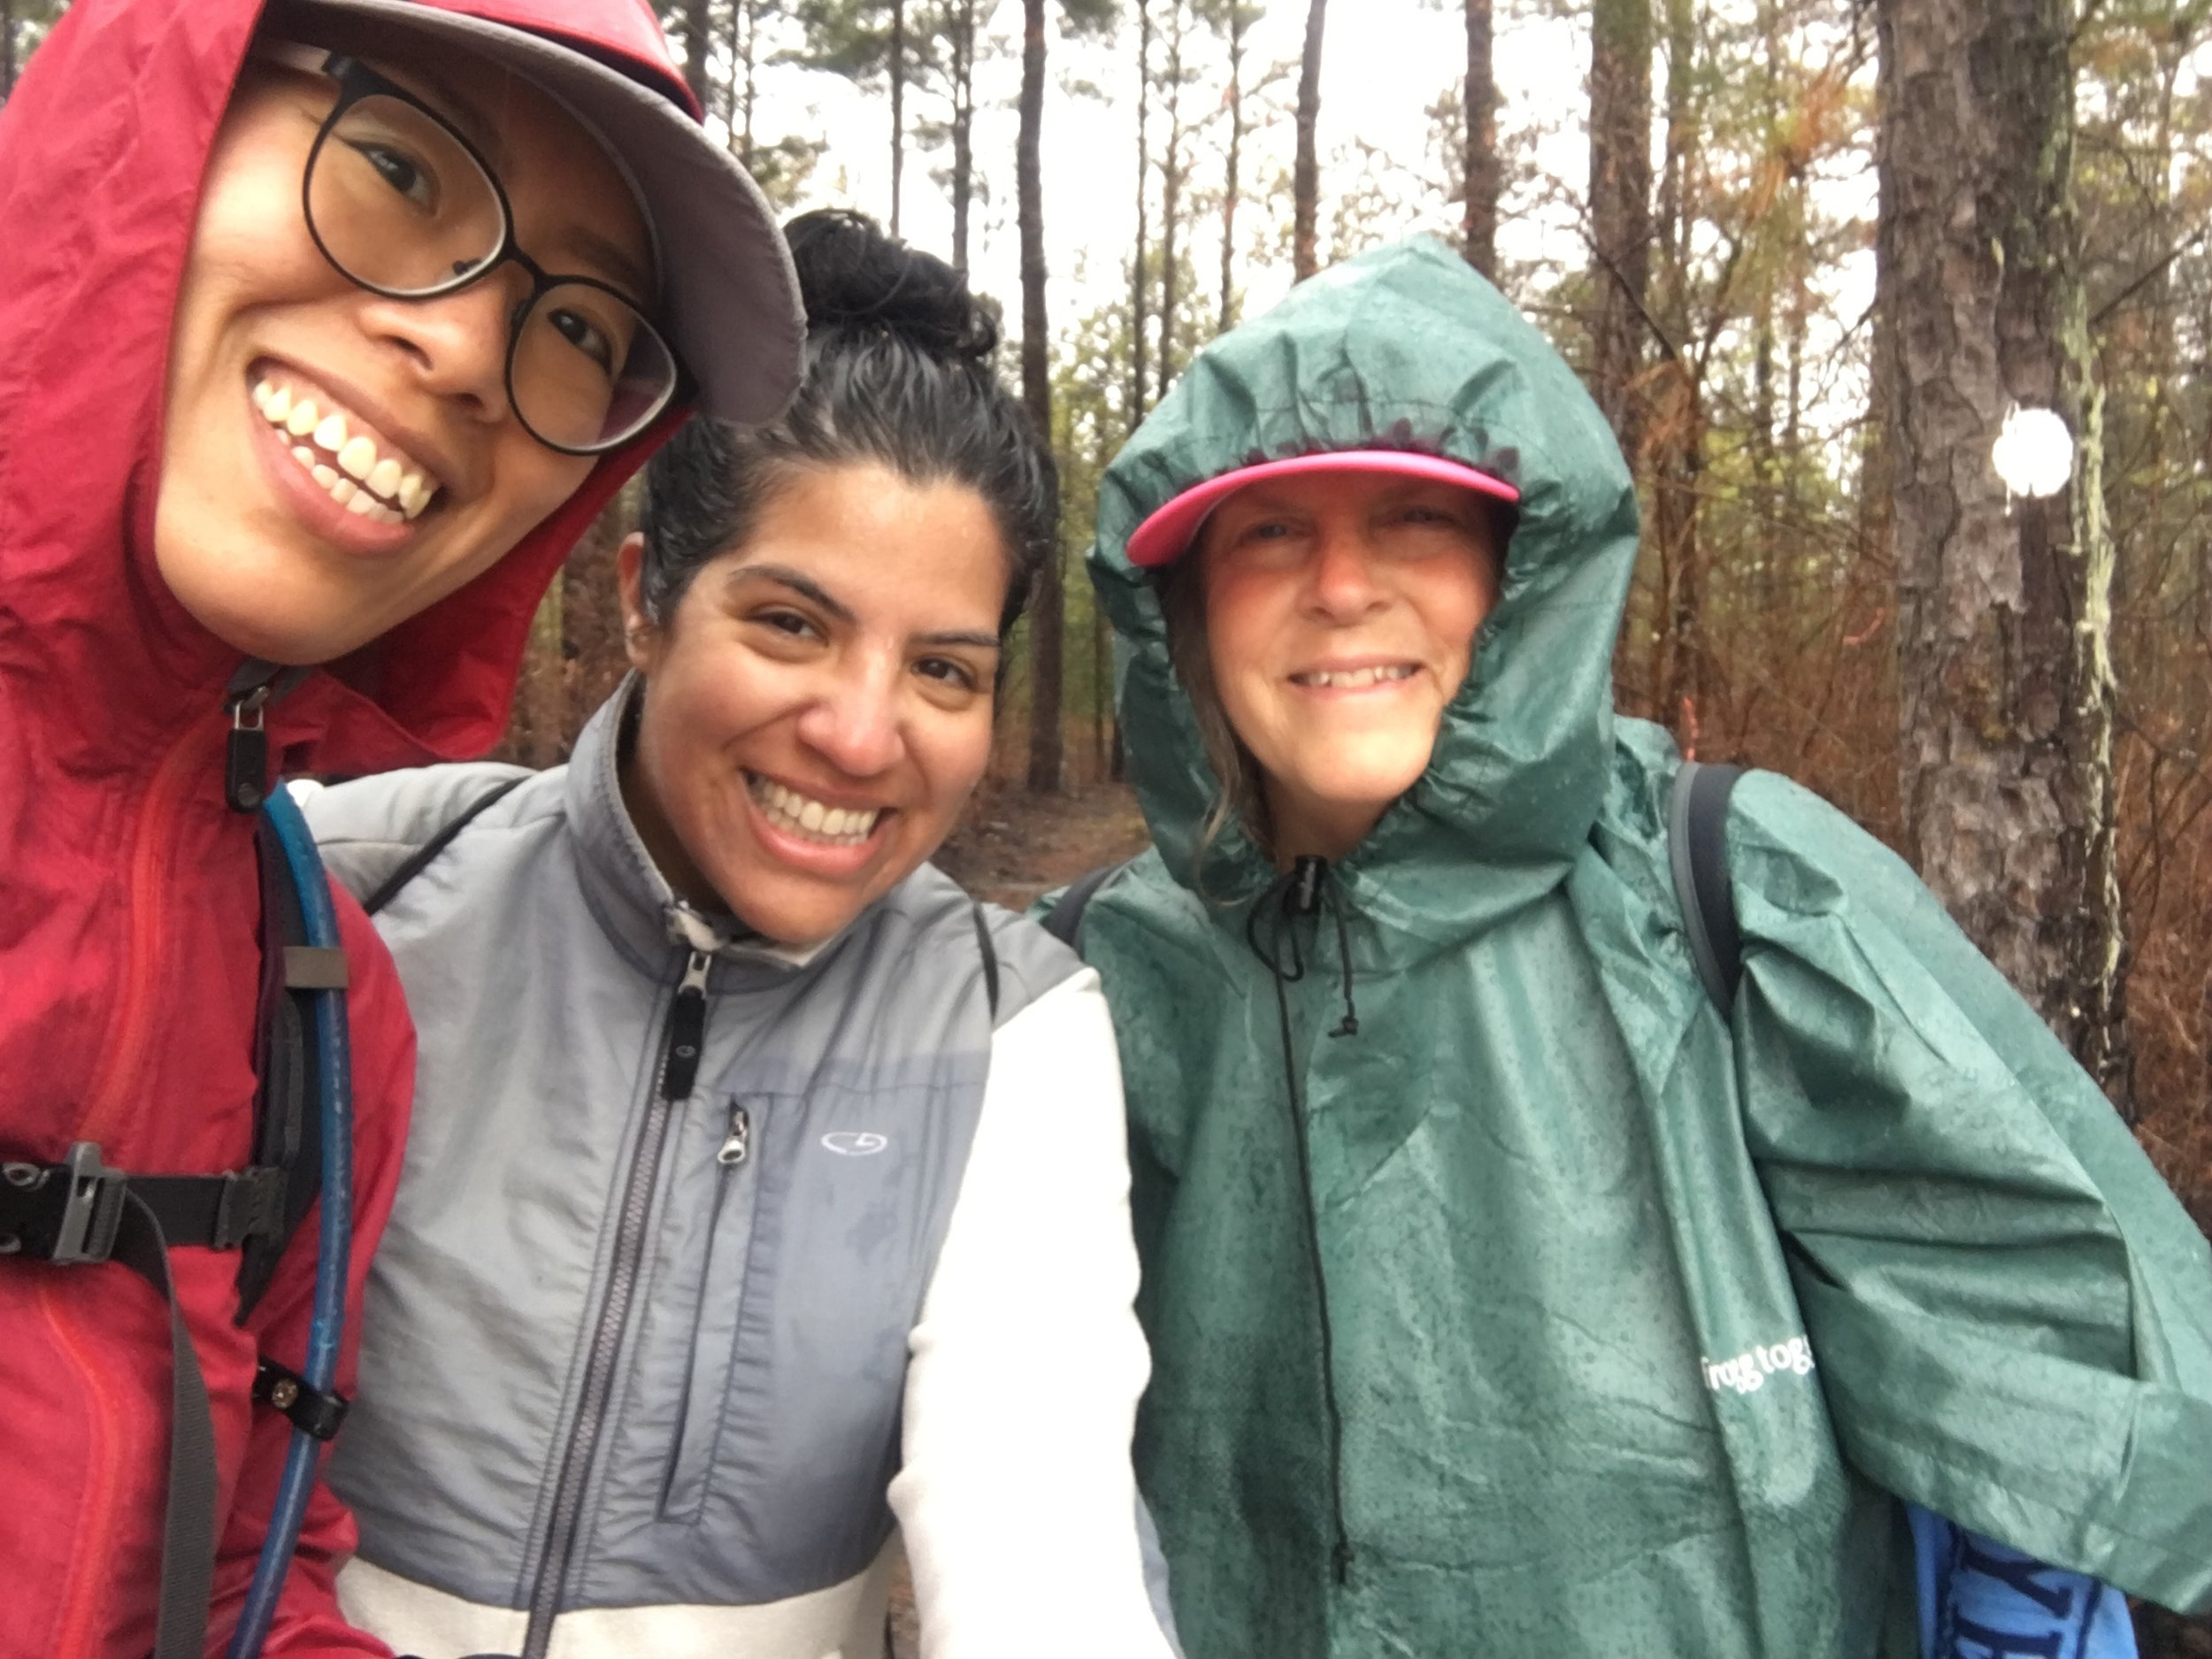 My most recent 17 mile training hike with other Trailblazers, in the 45 degree rain.